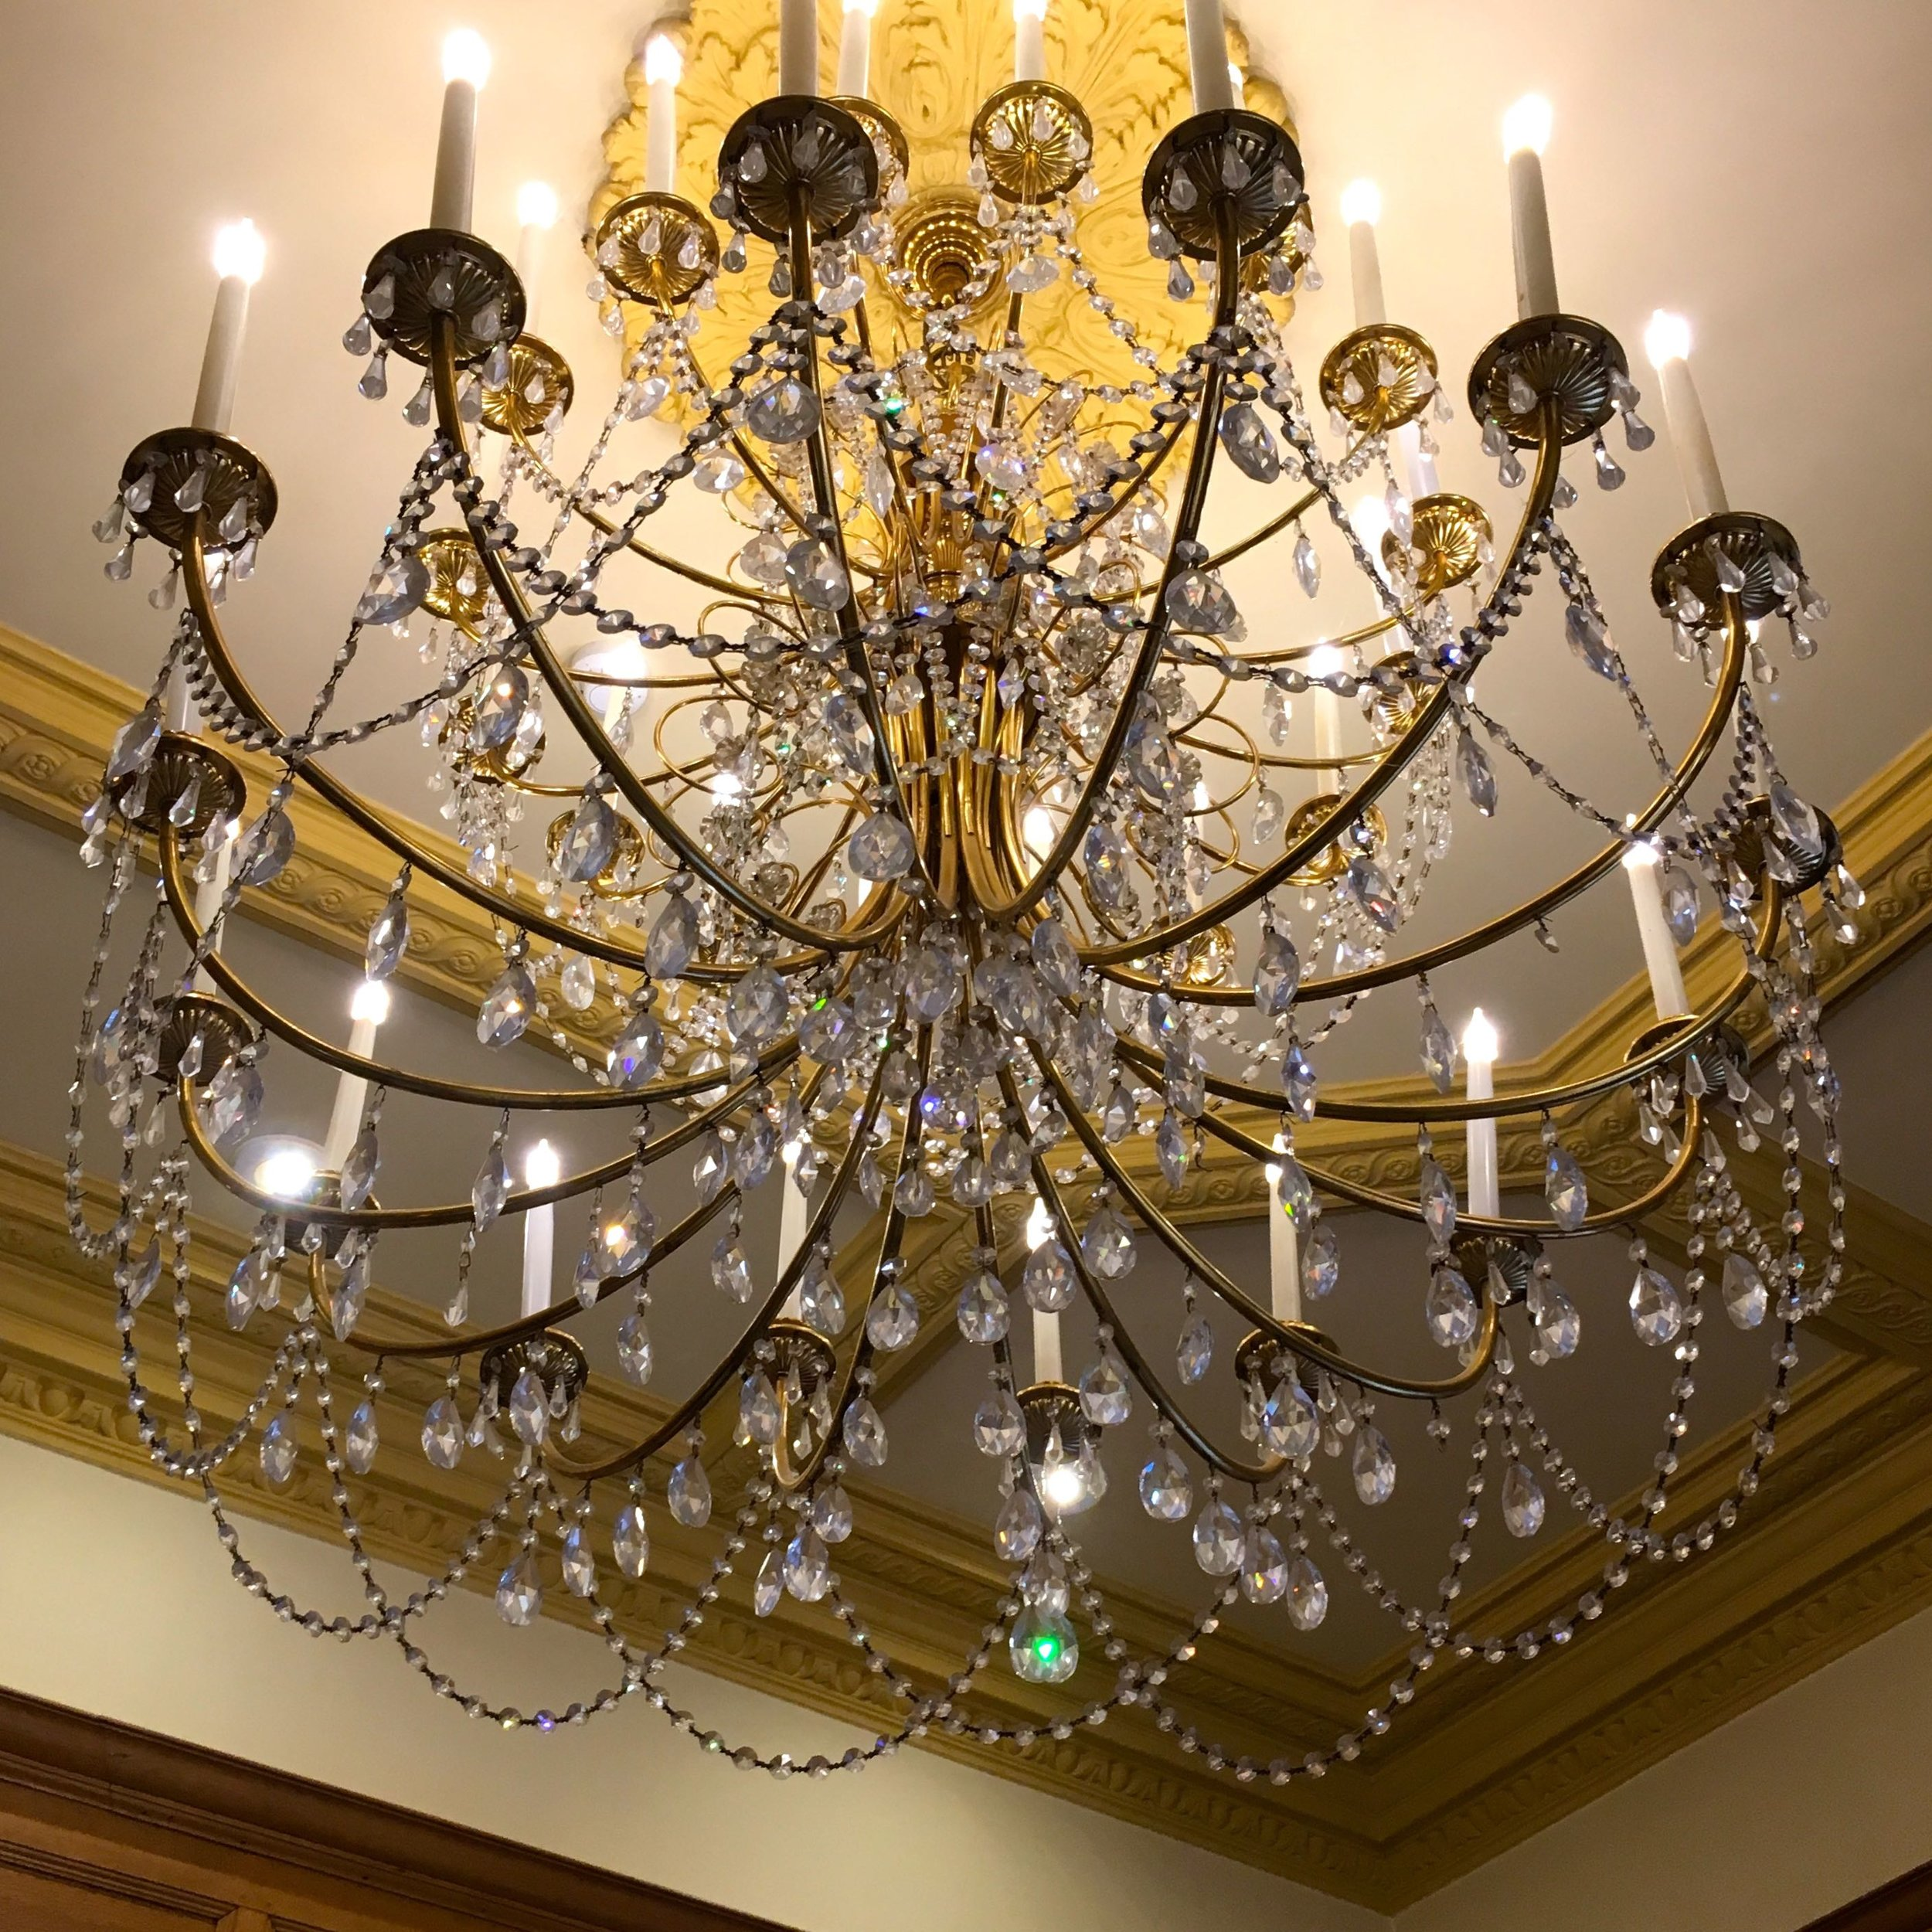 A chandelier in the lobby